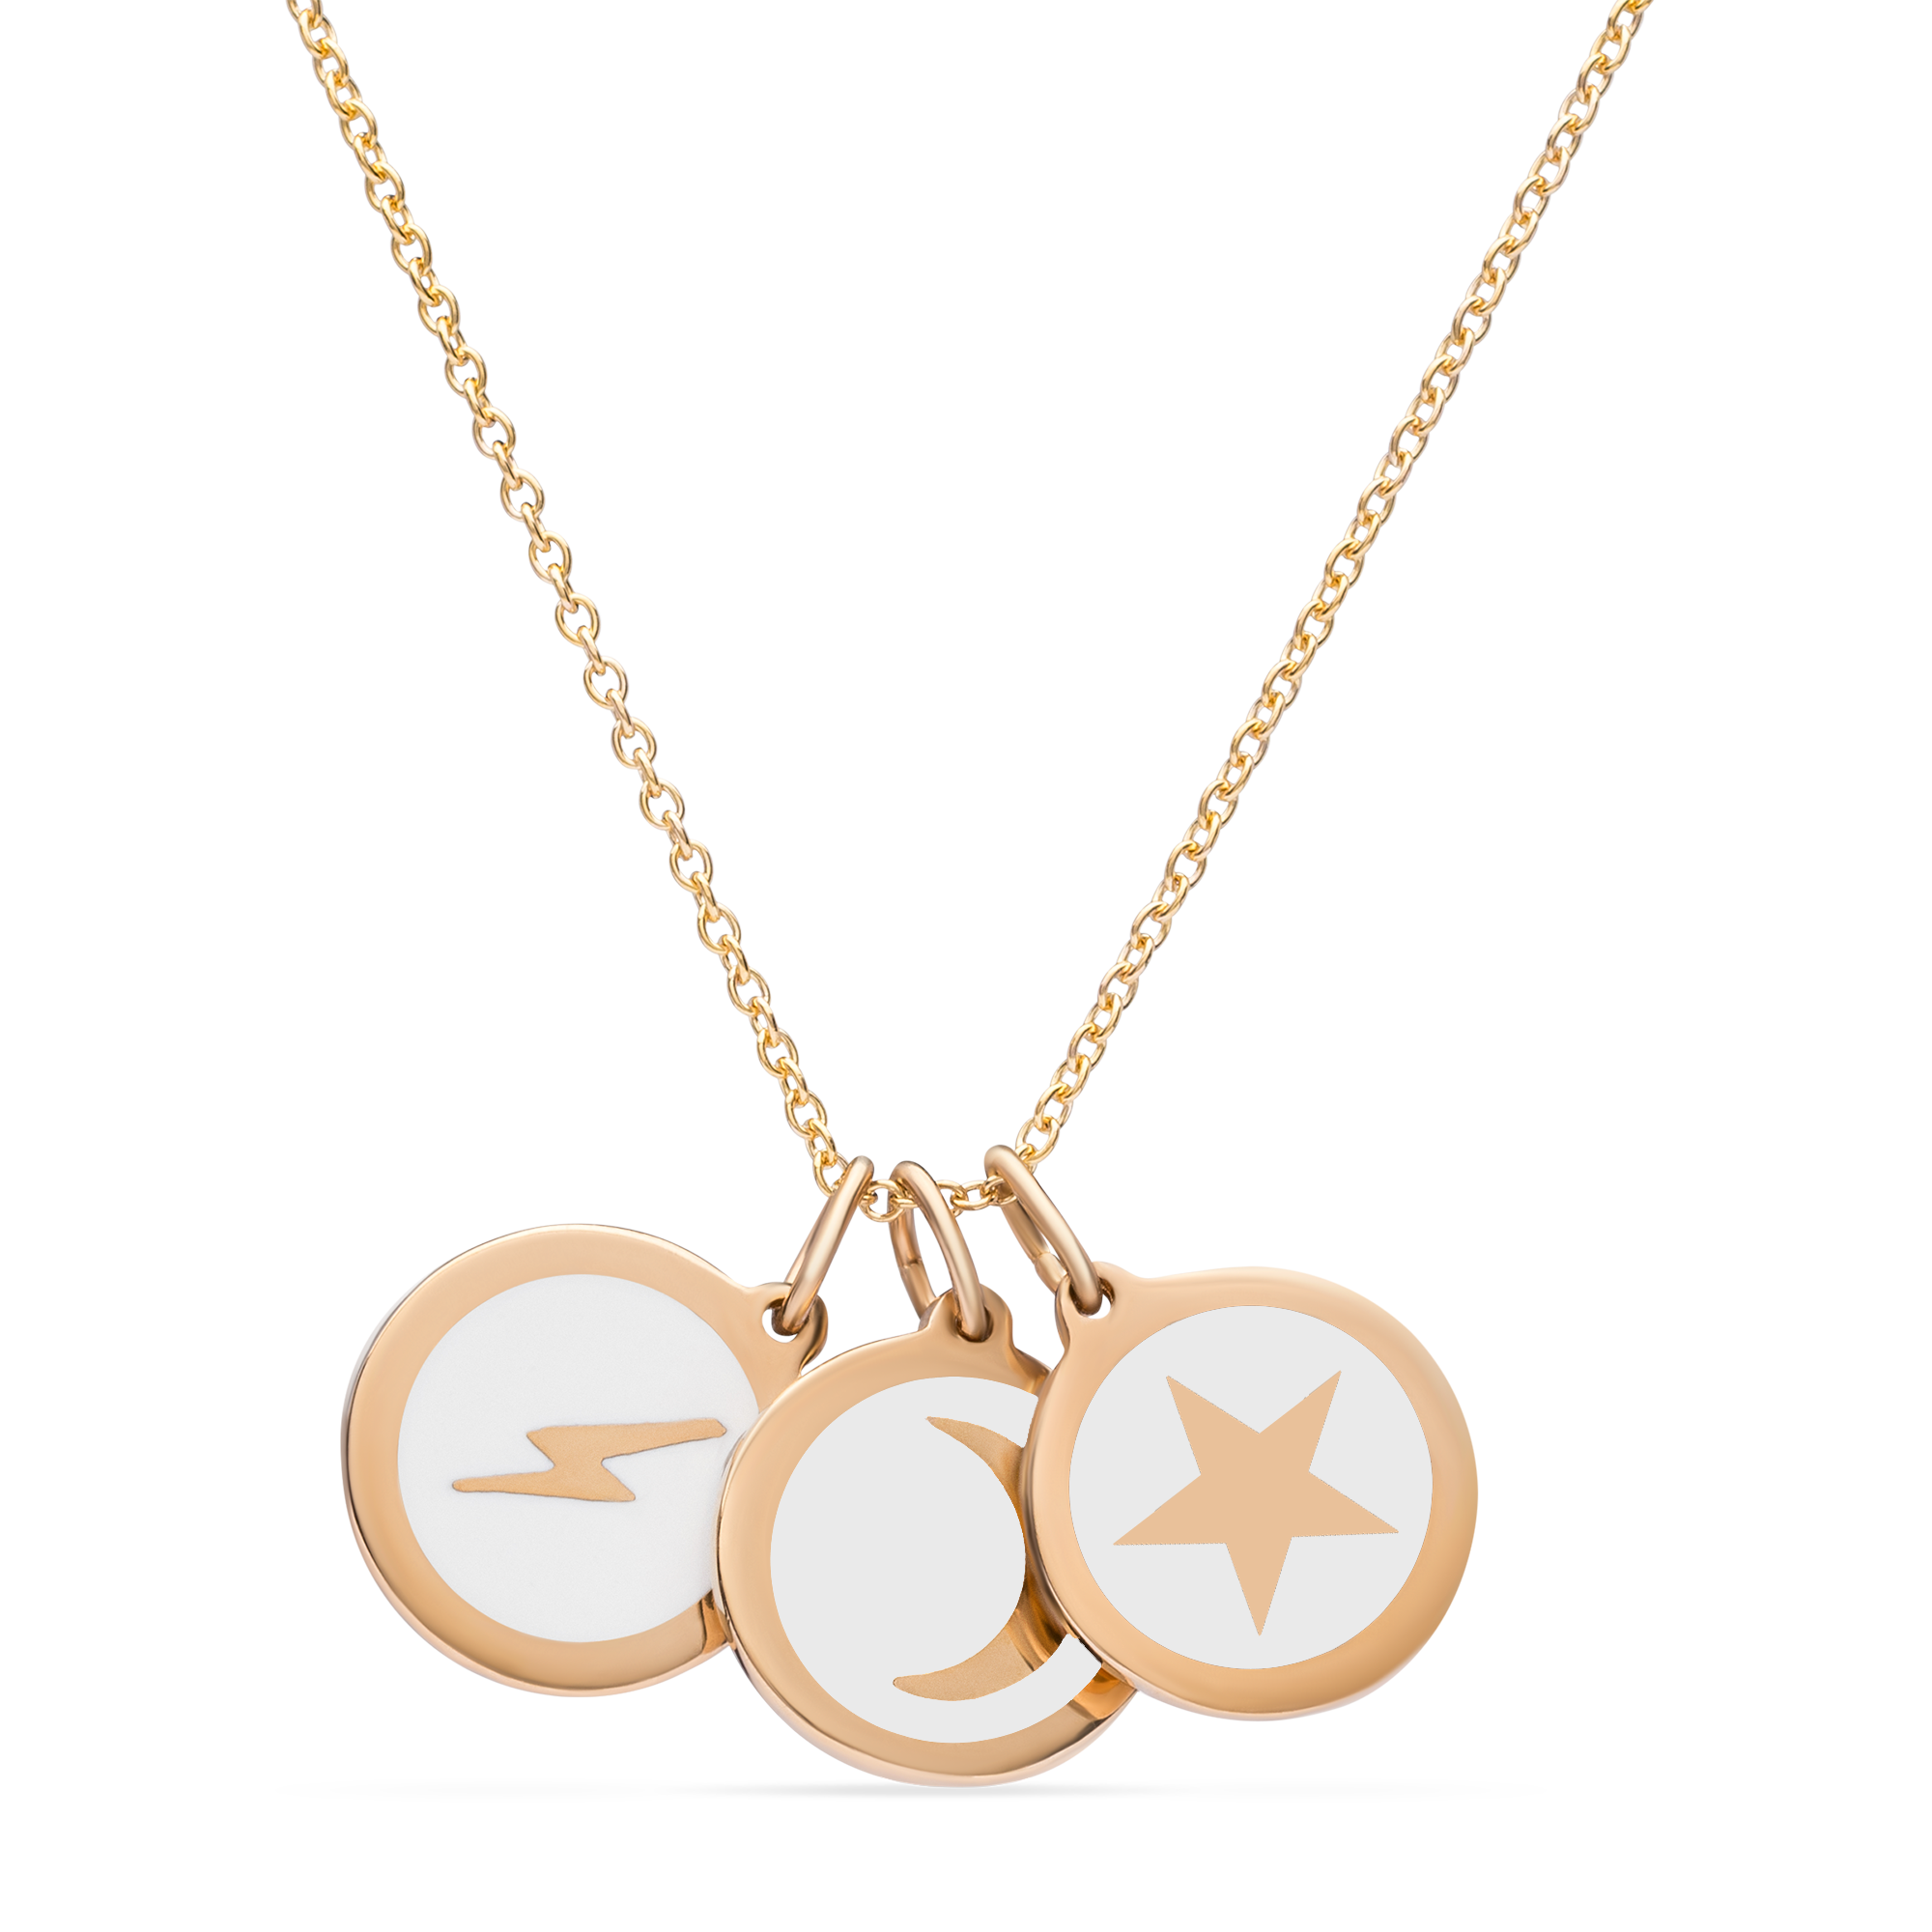 STAR, MOON, LIGHTNING NECKLACE 14k gold vermeil